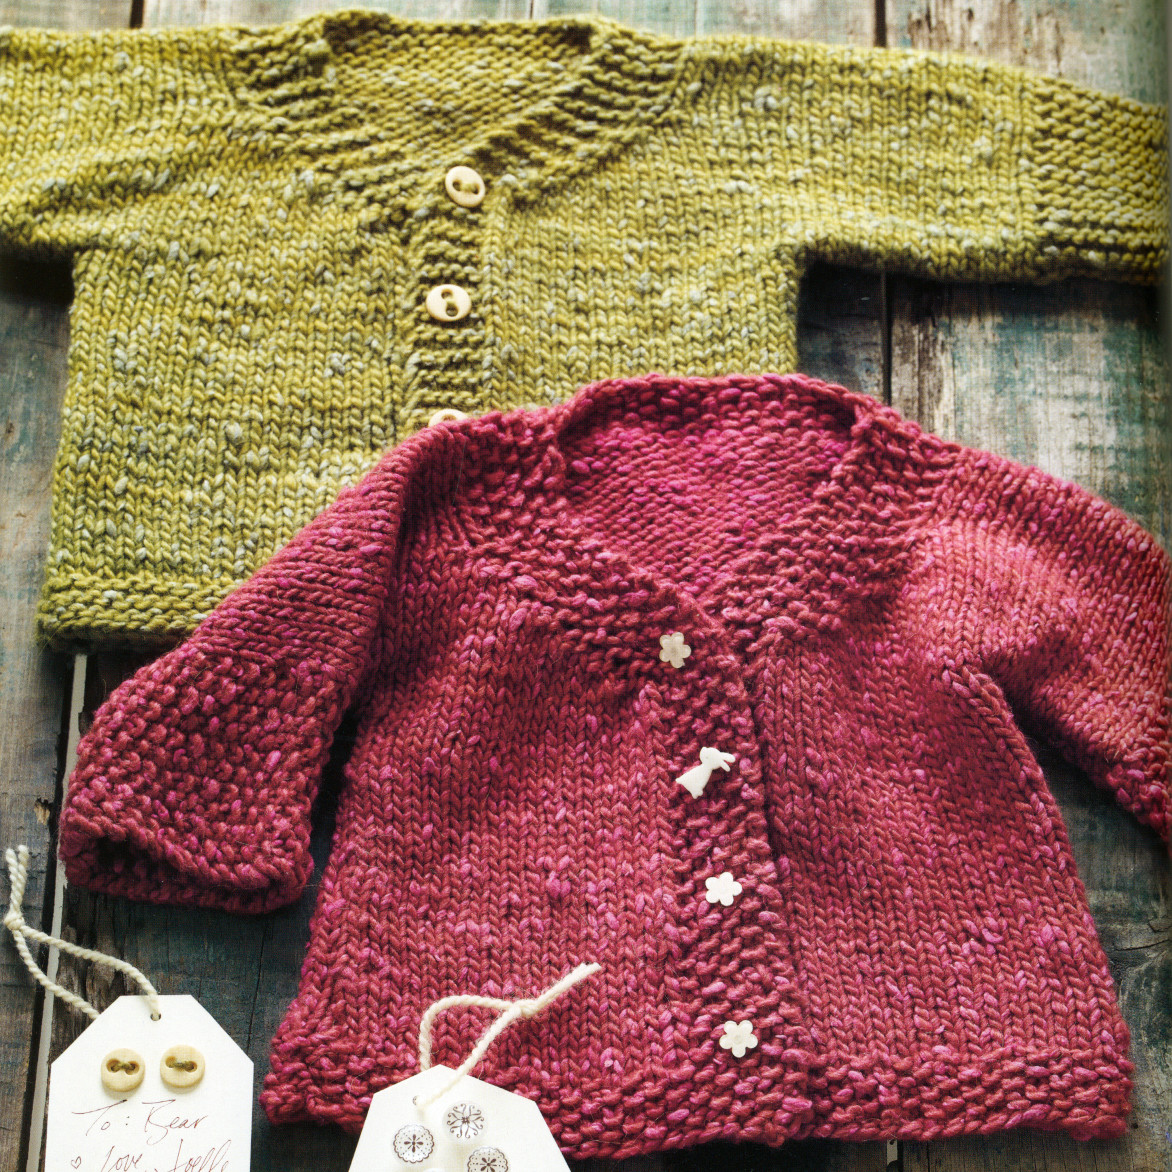 Knitting Patterns for toddlers Inspirational Webs Yarn Store Blog 2010 October Of Awesome 49 Images Knitting Patterns for toddlers